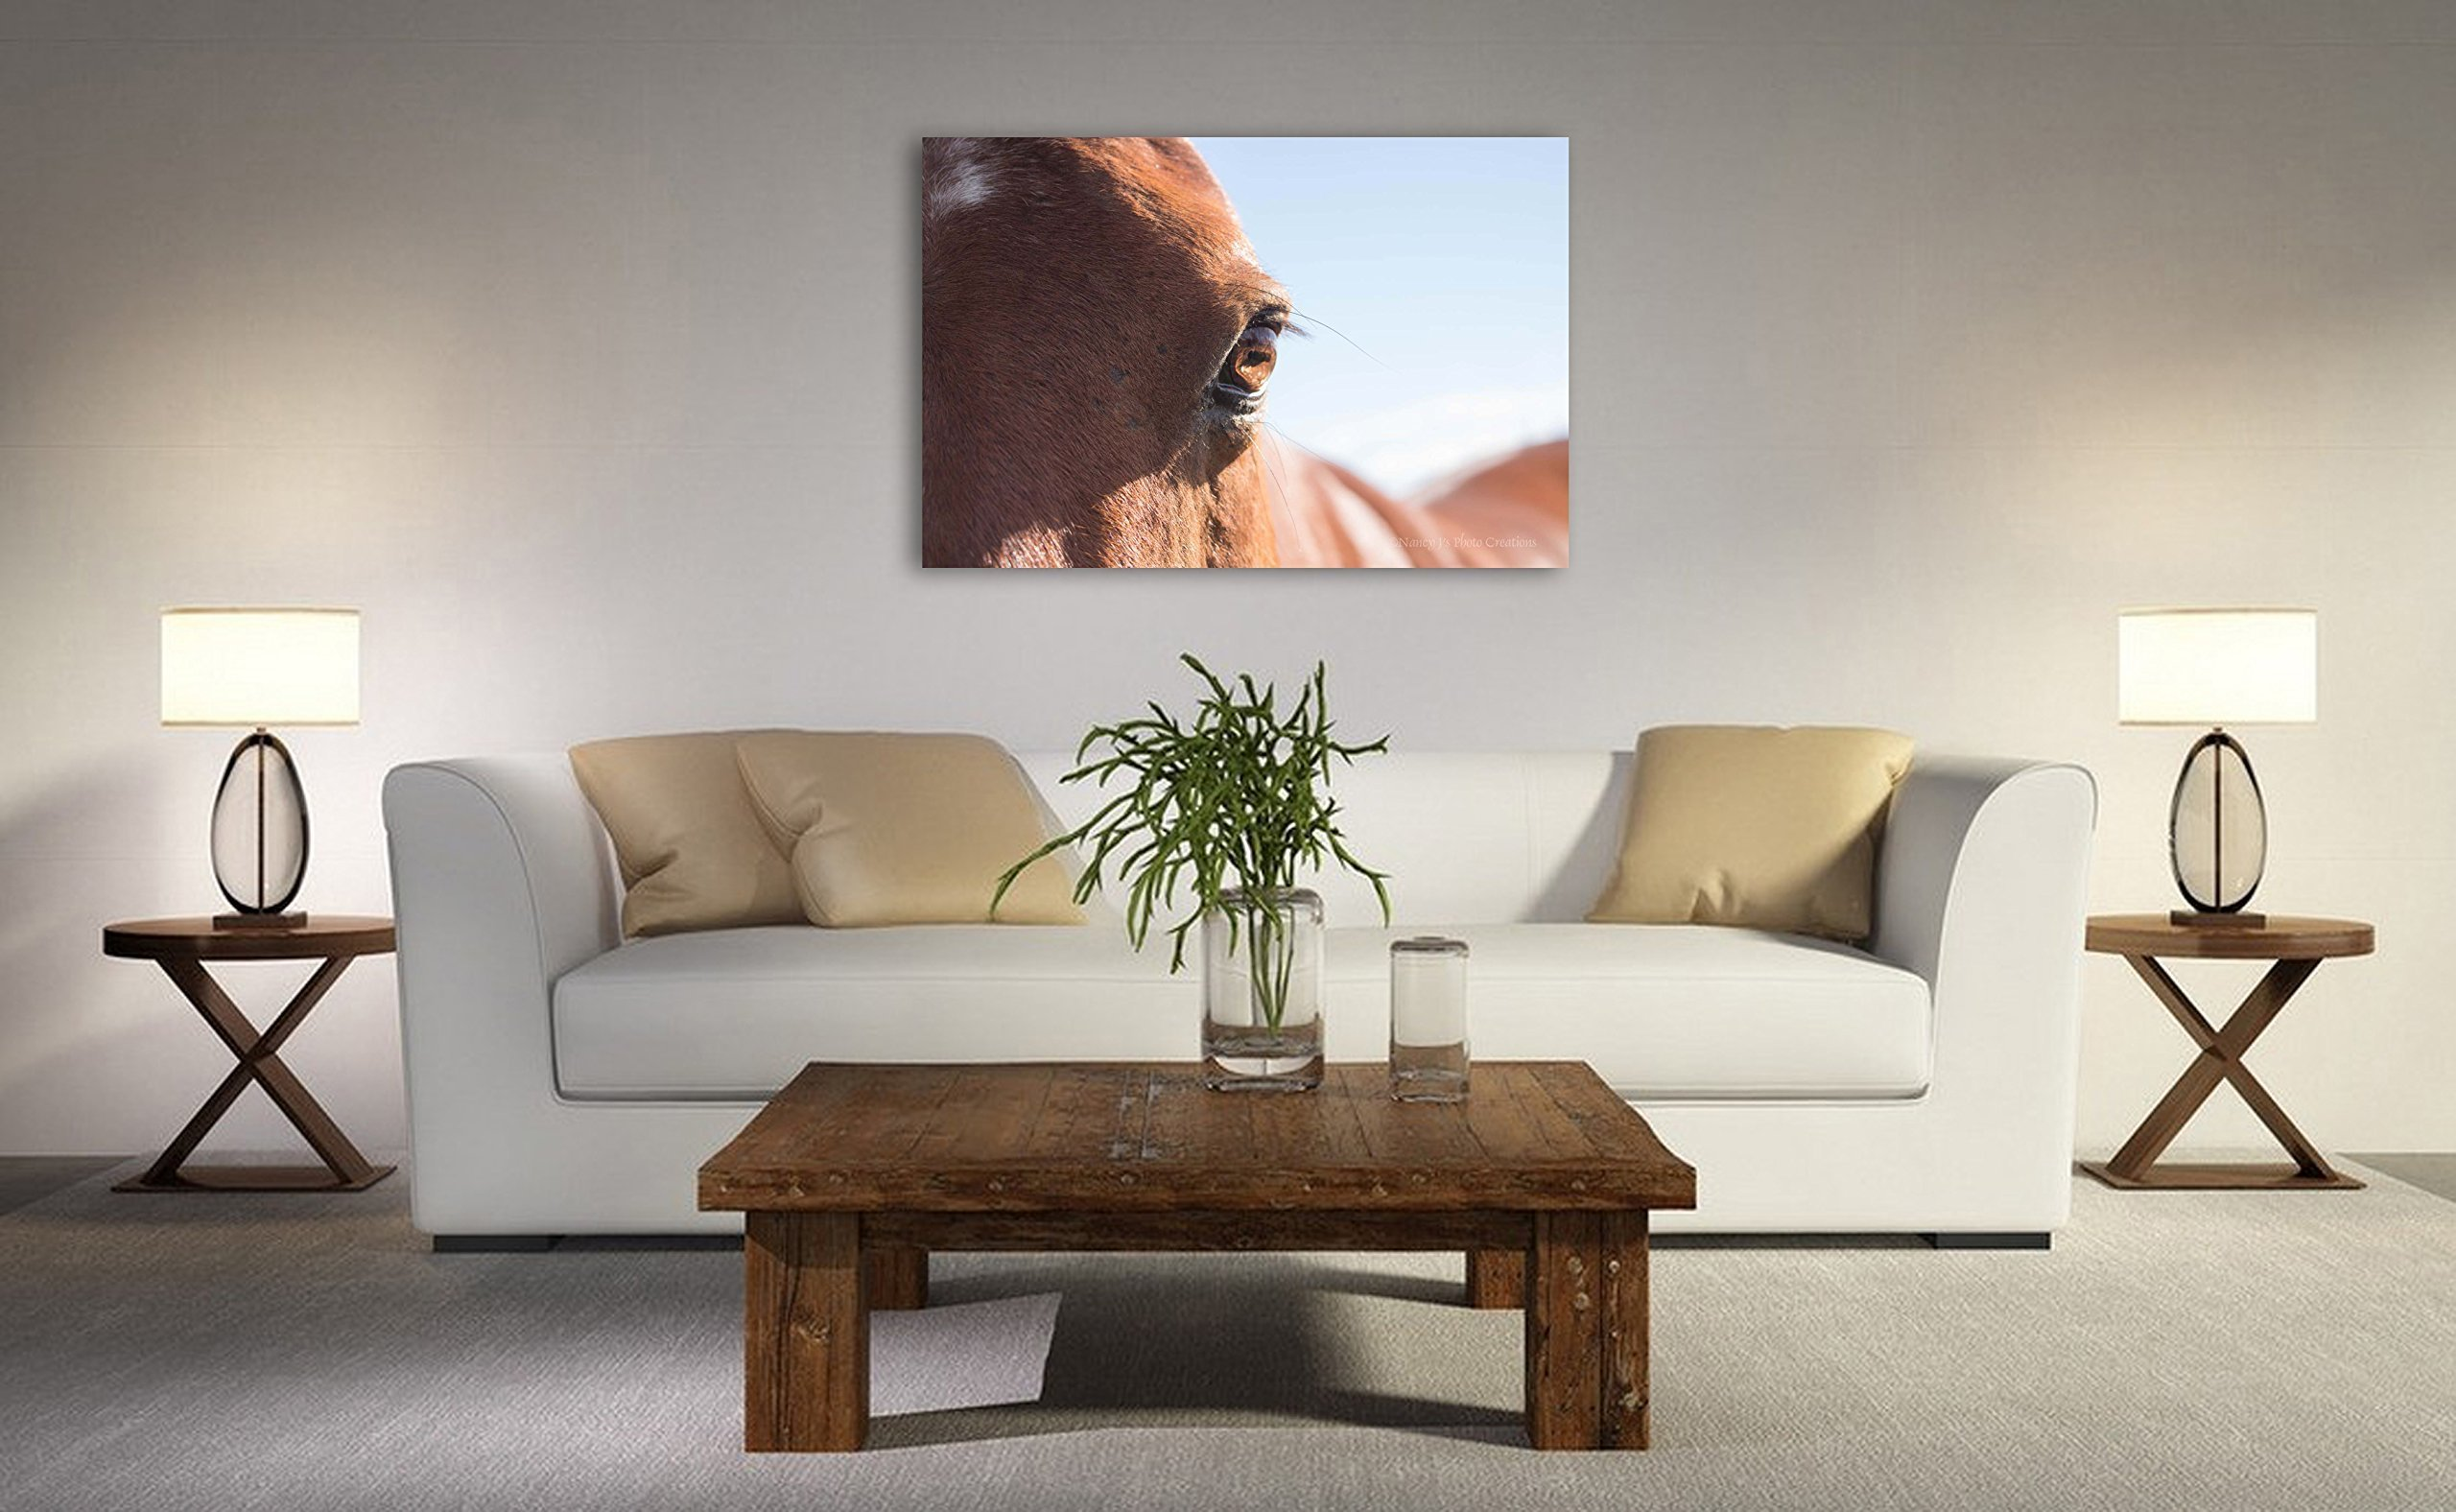 Equine Photo on CANVAS Horse Photography Fine Art Print Girl's Room Wall Decor Brown Animal Picture Minimalist Photograph Ready to Hang 8x10 8x12 11x14 12x18 16x20 16x24 20x30 24x36